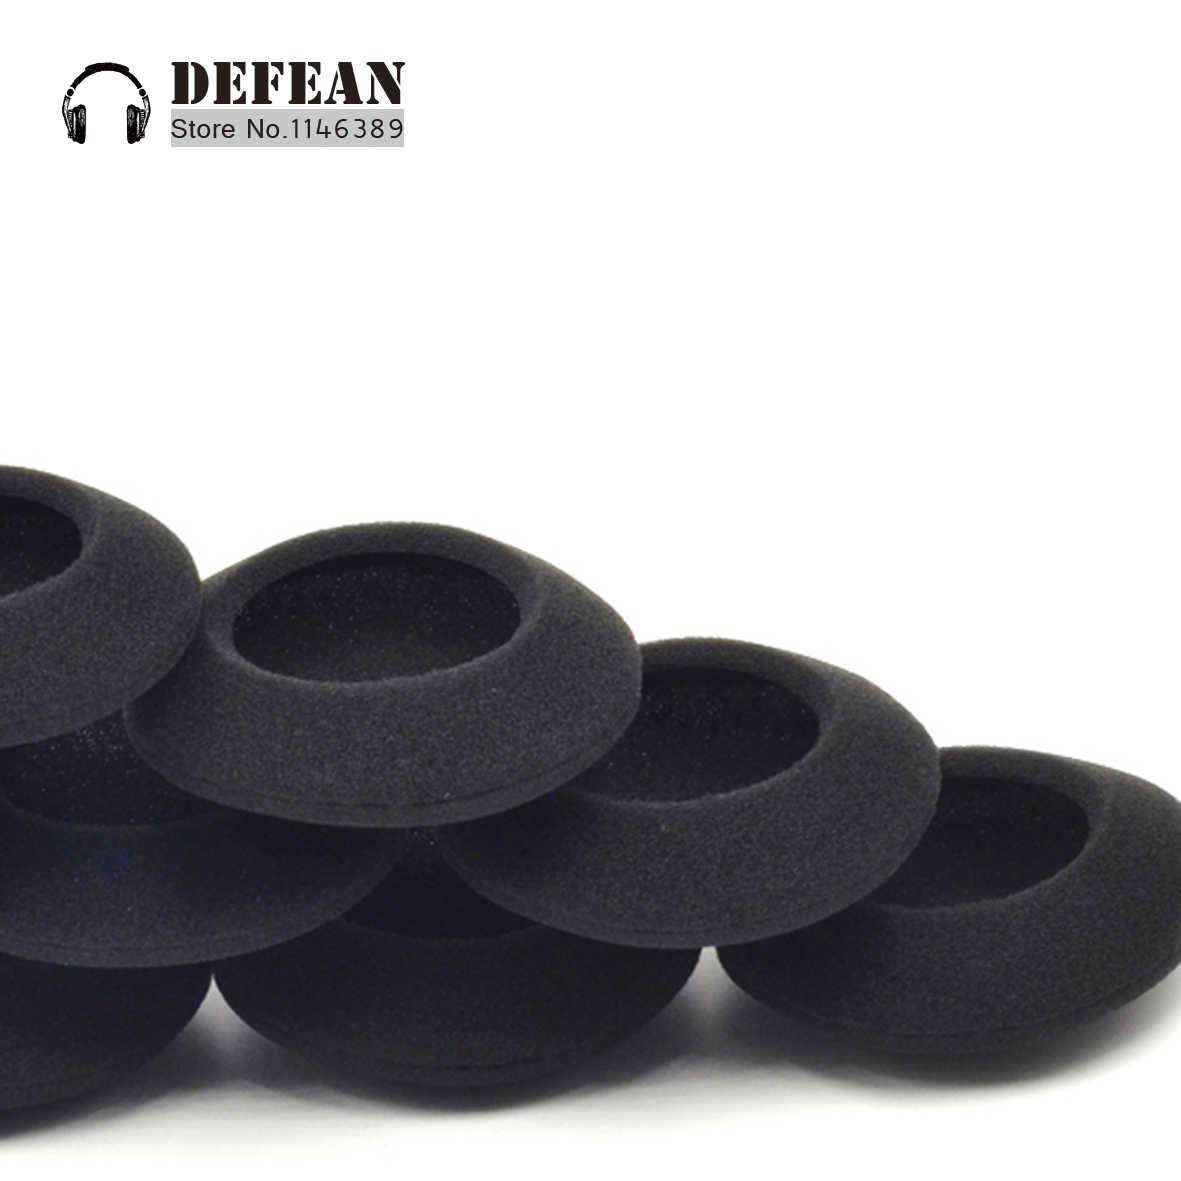 685b7a4e6b2 10pcs foam cushion ear pads for Plantronics Audio 310 470 478 628 626  headphoneFree shipping alistore